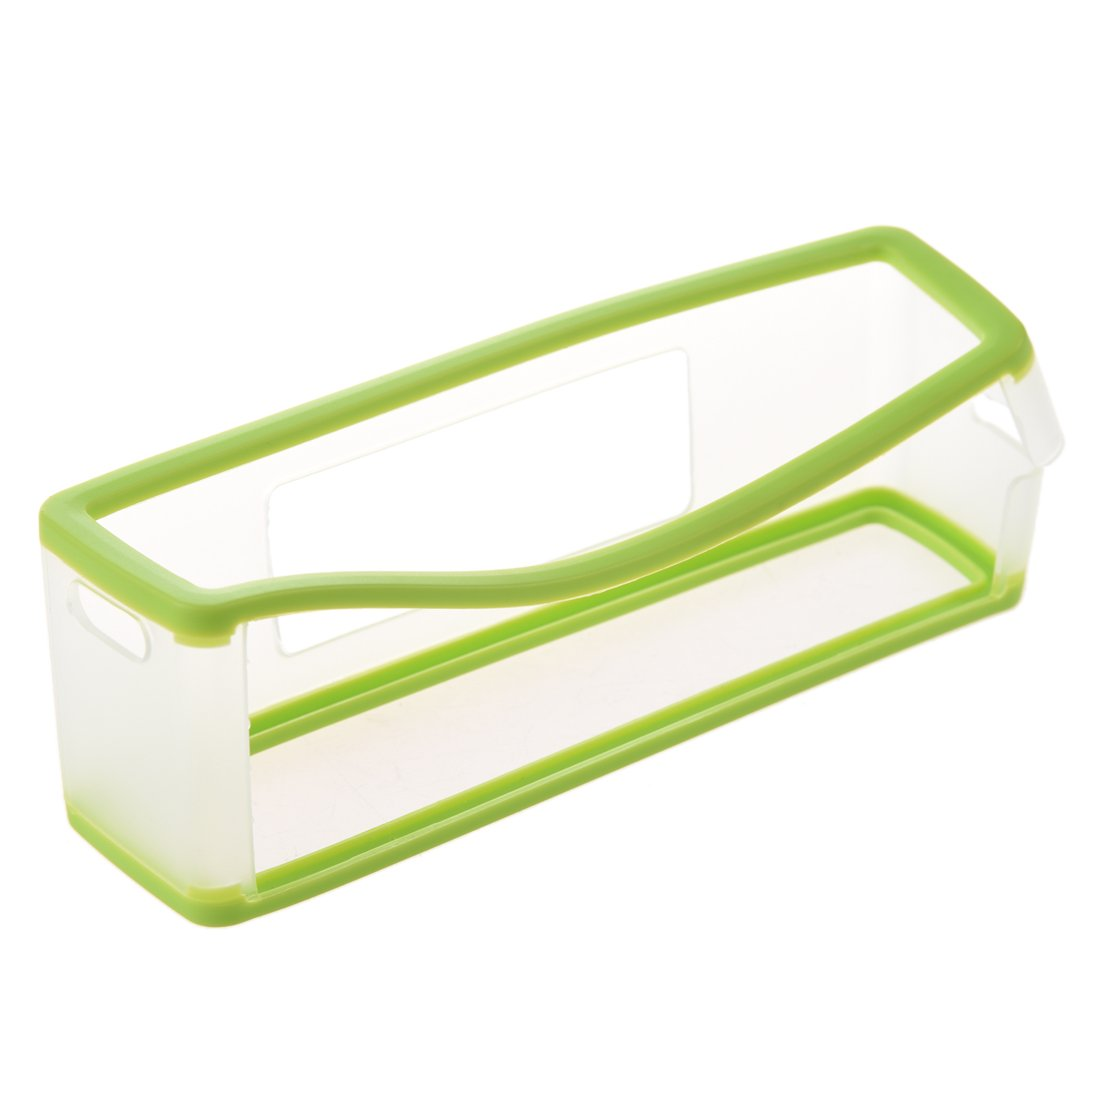 Soft Cover Case - SODIAL(R) Soft Cover Case Protector for BOSE SoundLink Mini Bluetooth Speaker Green+Clear 059205A1